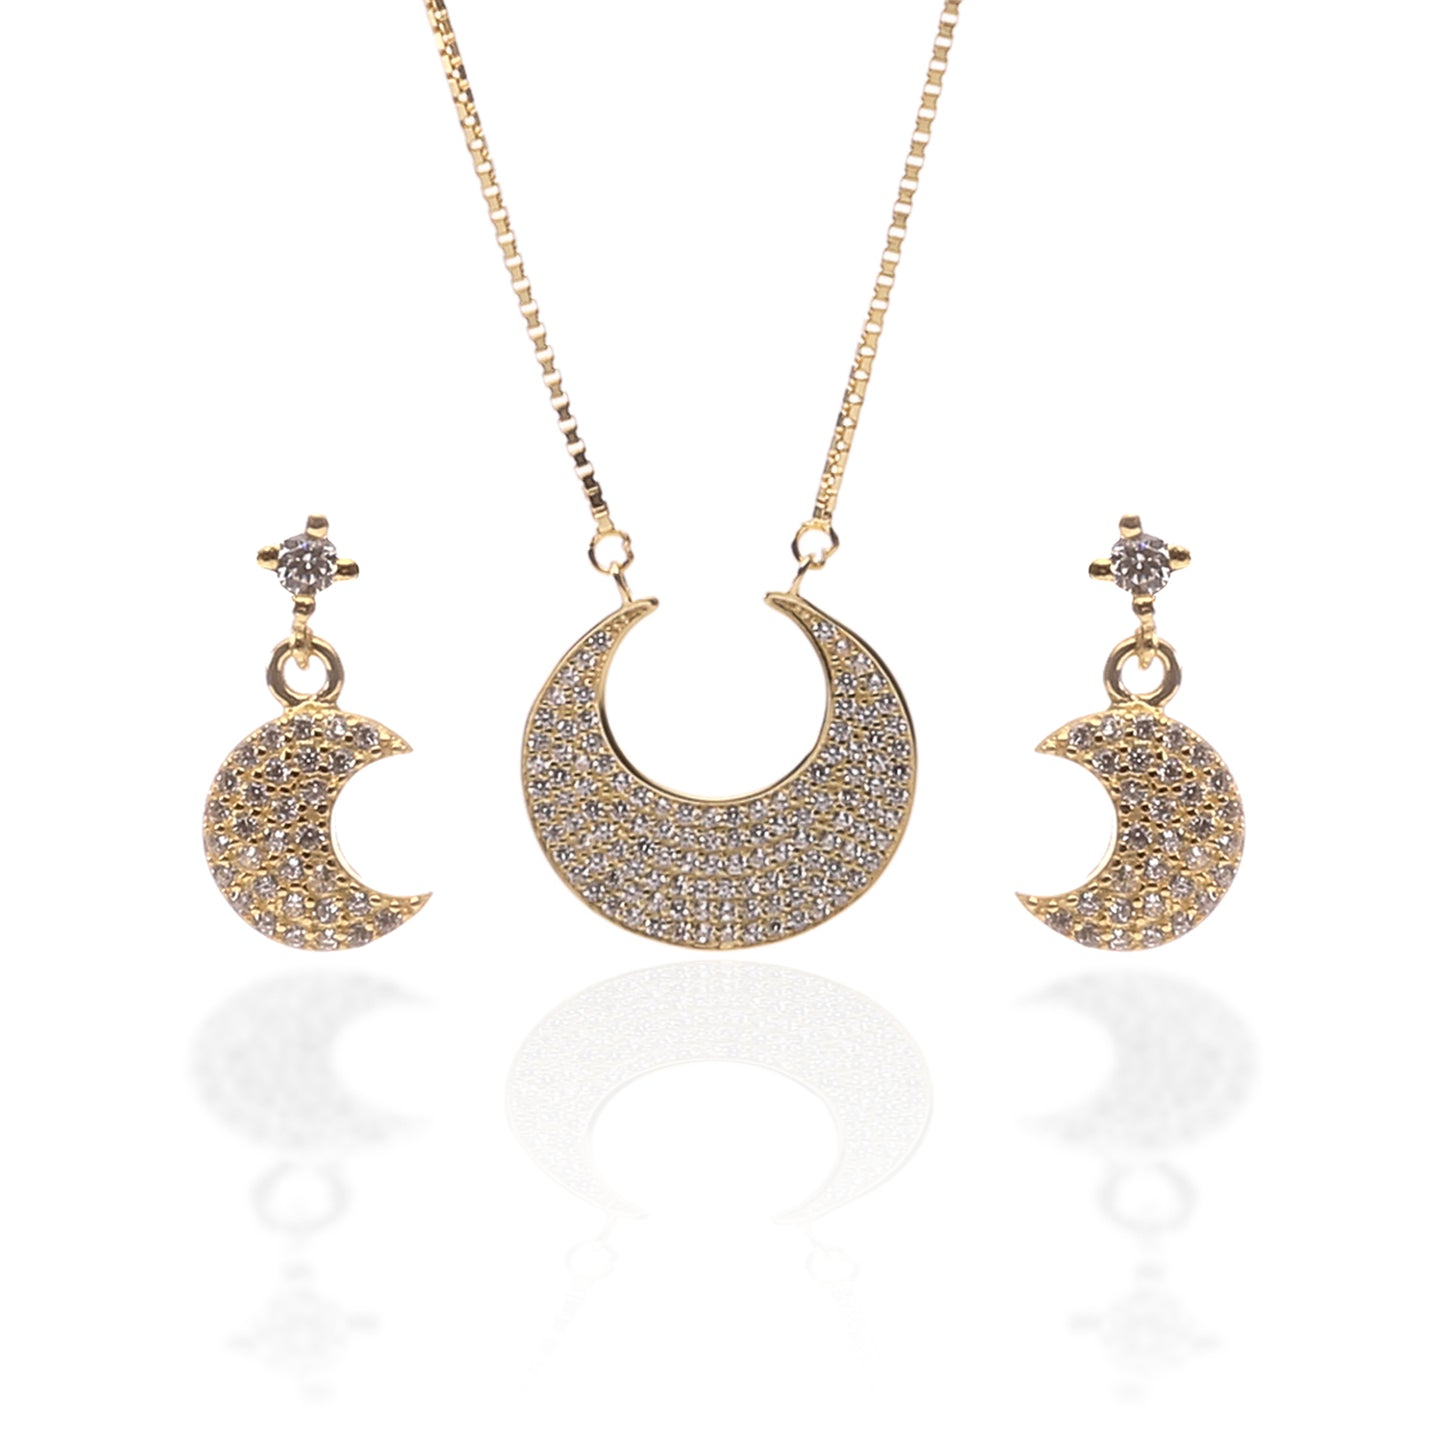 Crescent Moon Shaped Pendant Necklace and Earrings Set - ARJW1001GD - ARCADIO LIFESTYLE